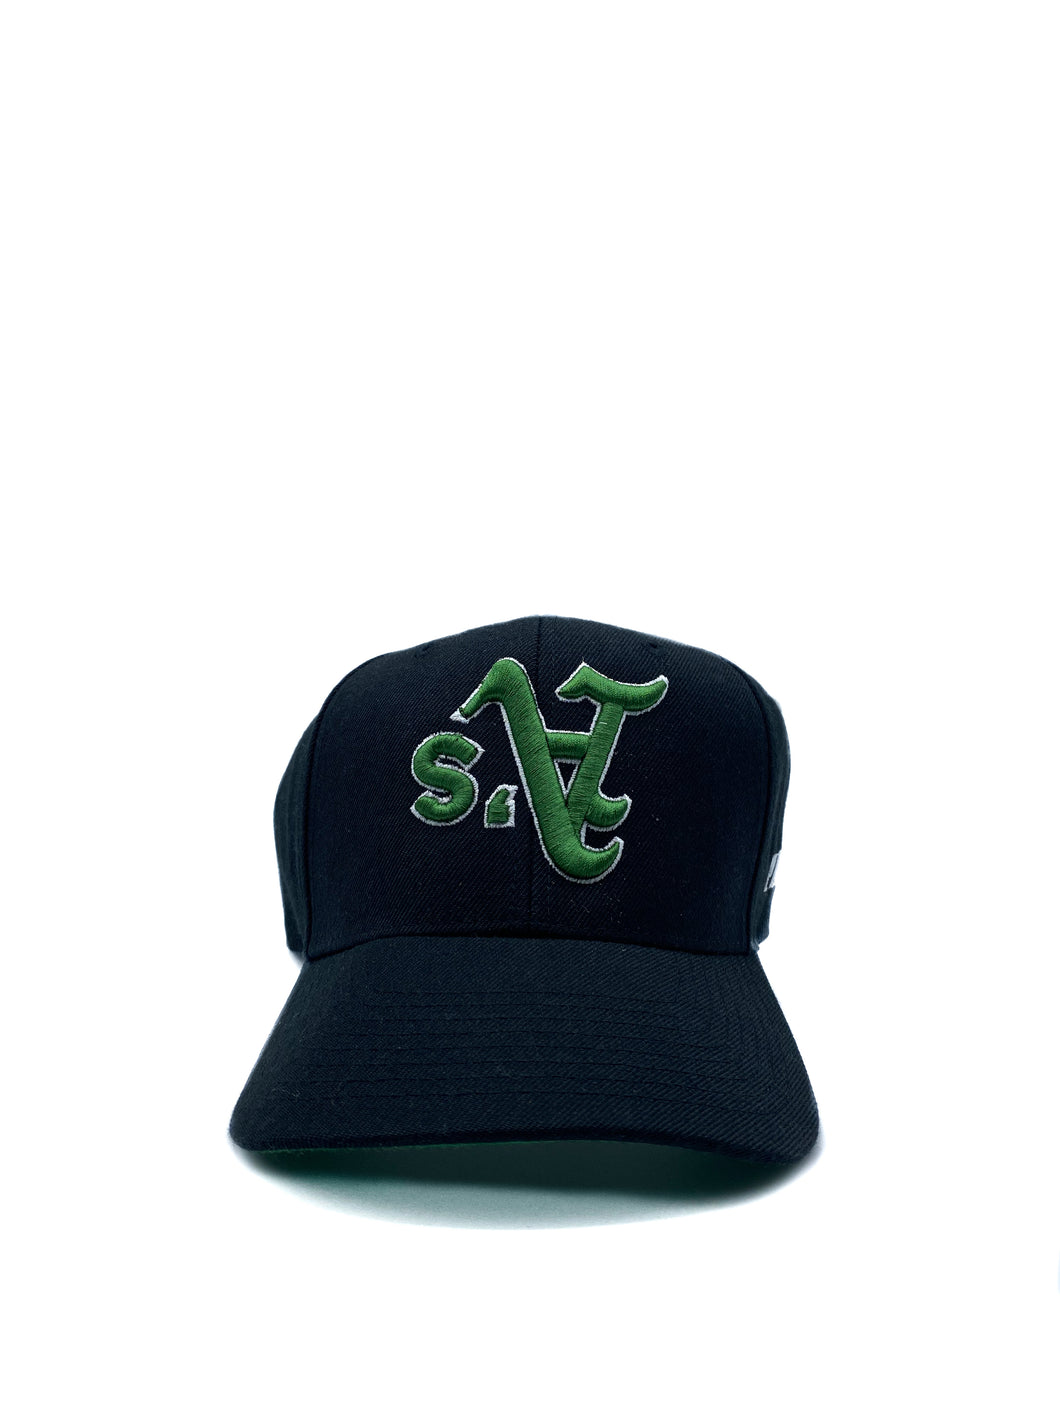 Oakland A's - Green / Blvck